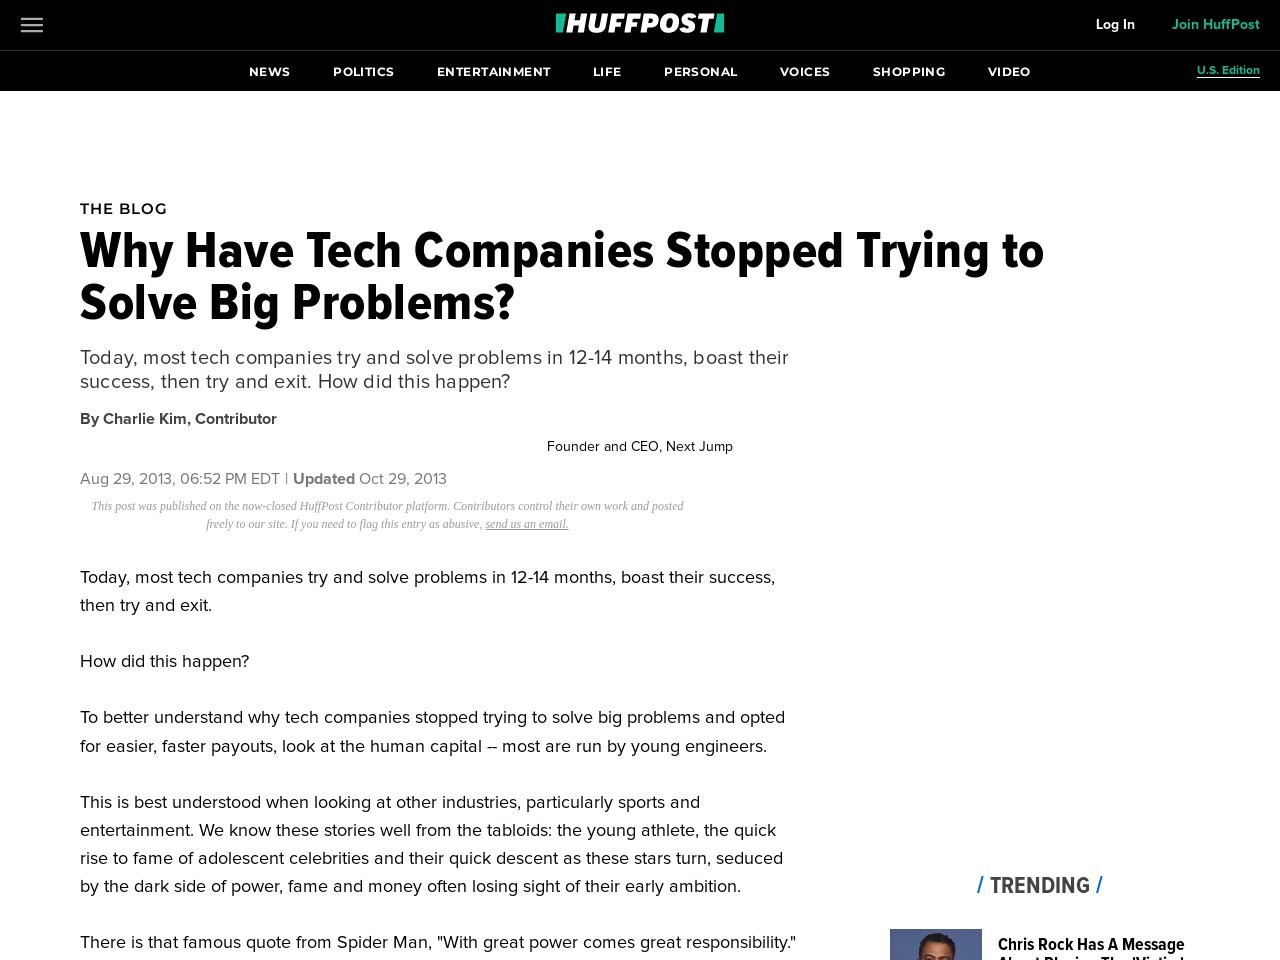 Why Have Tech Companies Stopped Trying to Solve Big Problems?